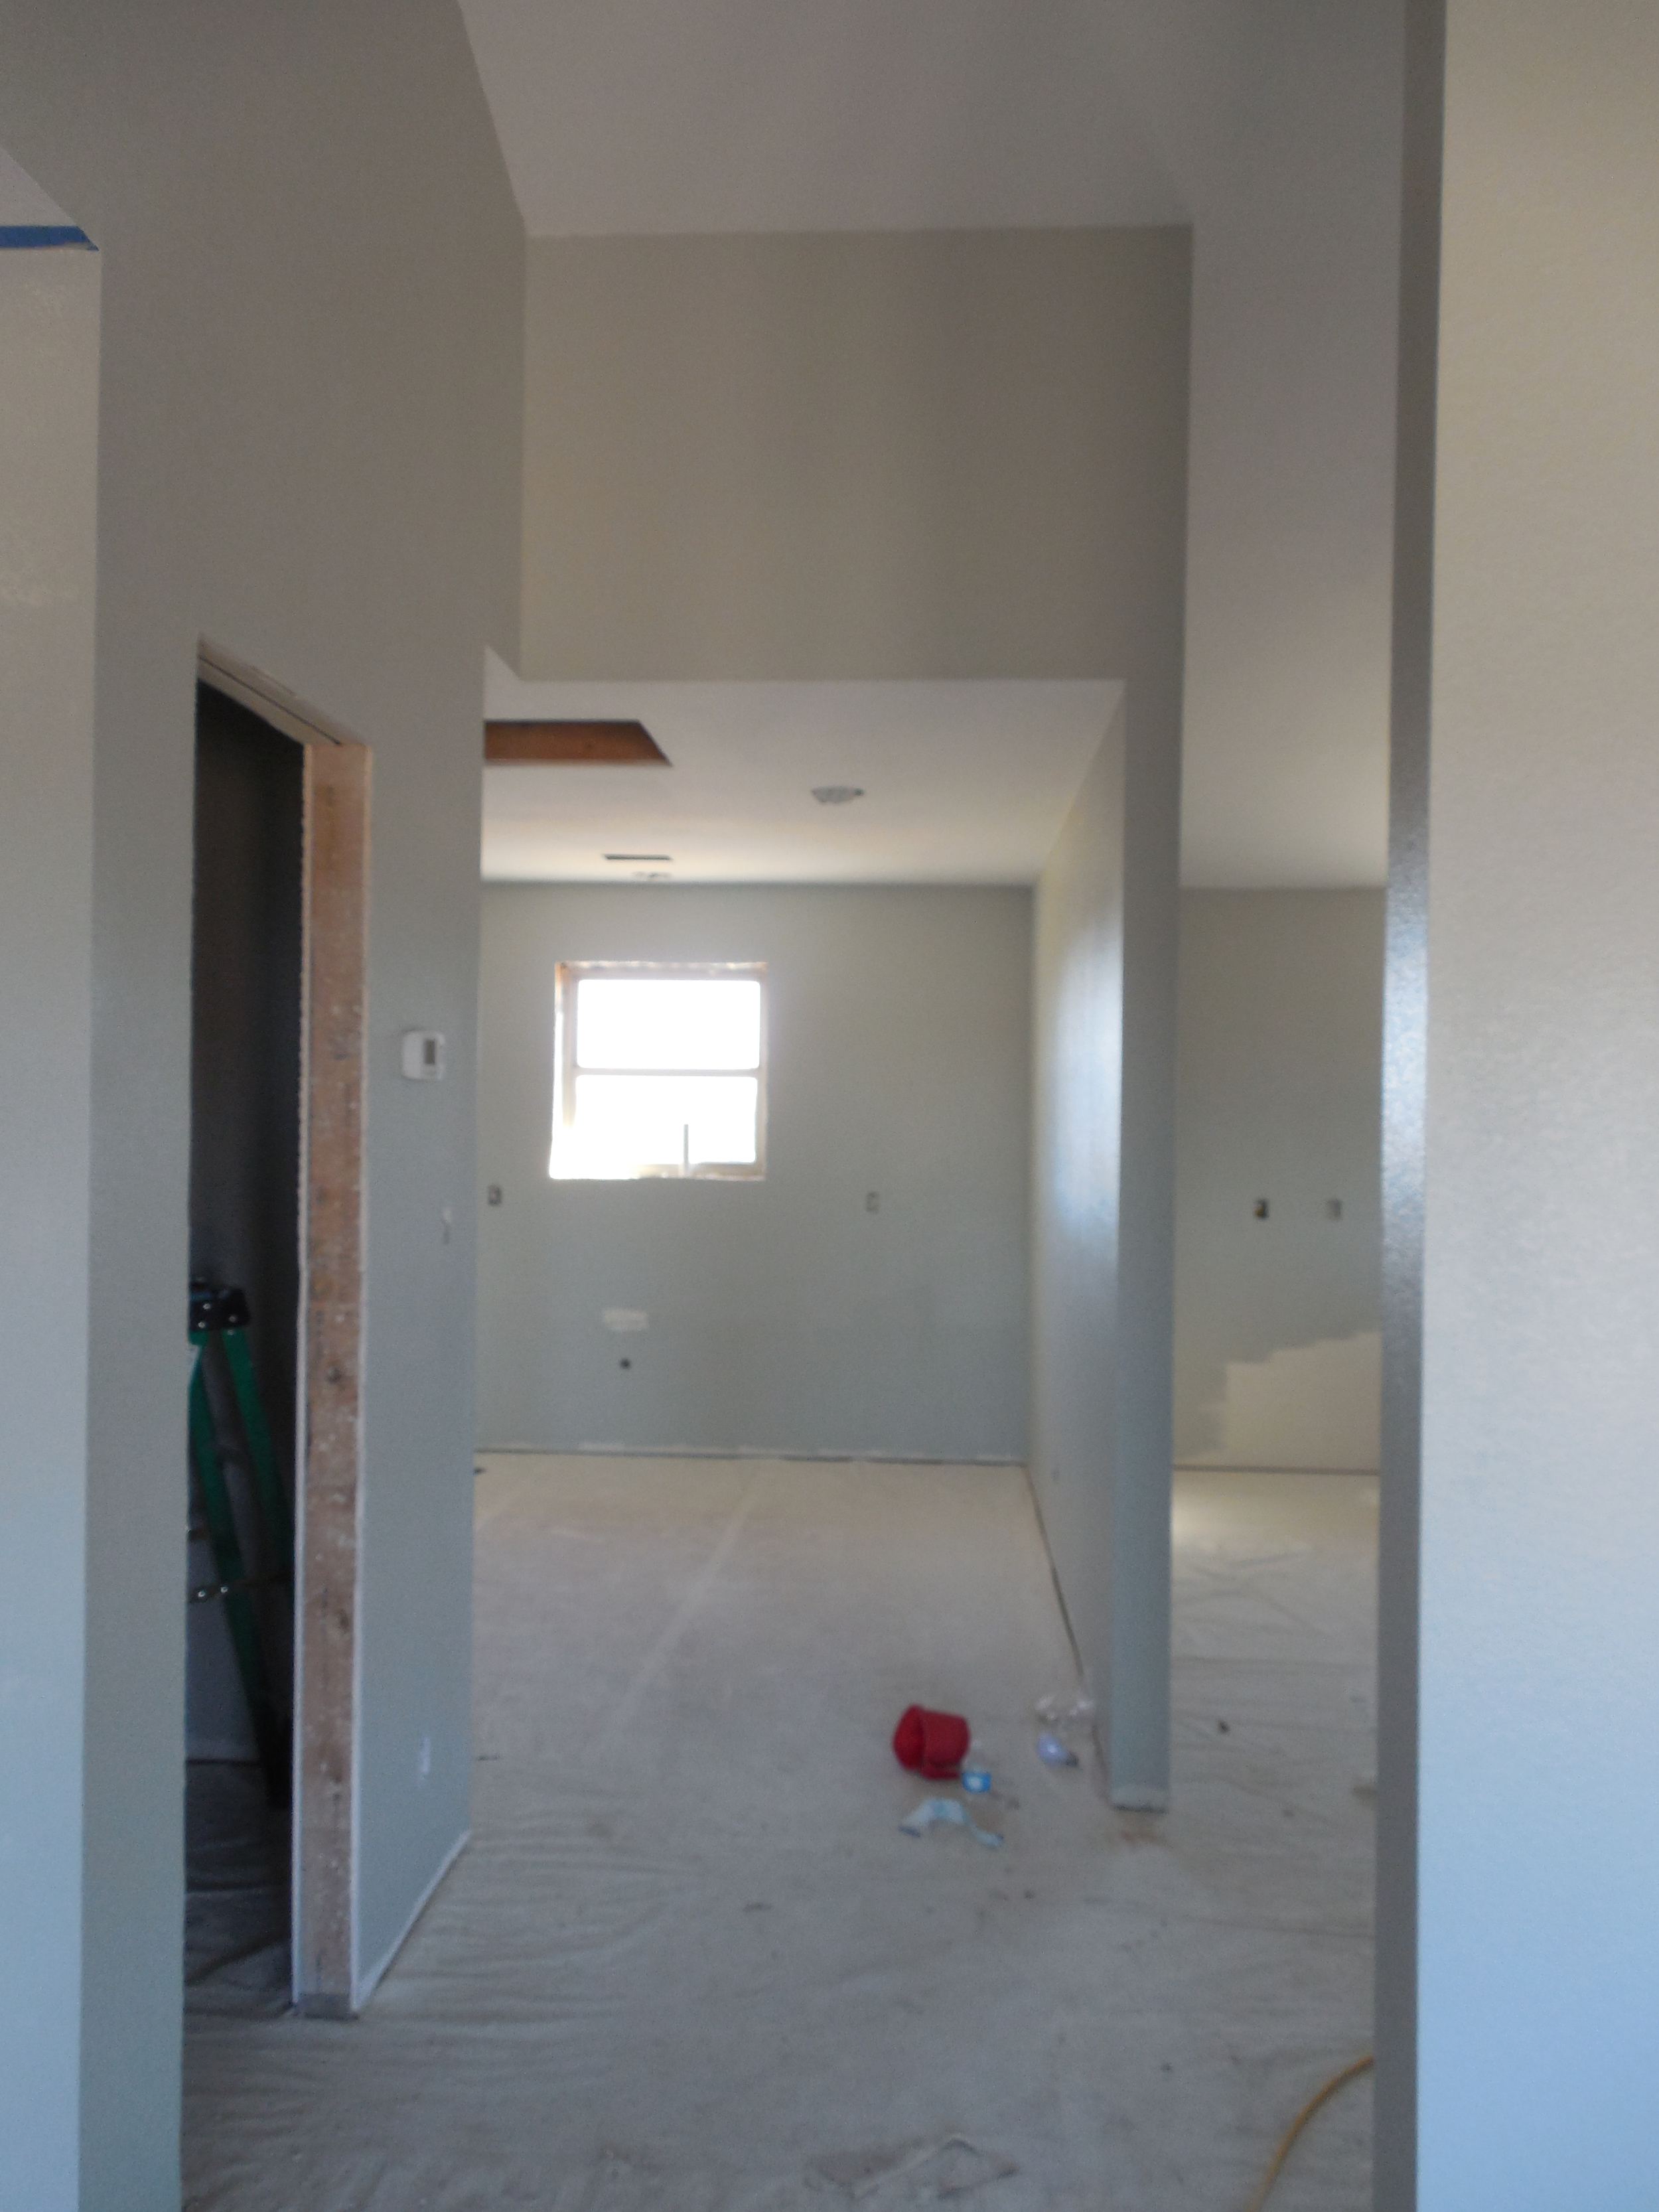 Entry to laundry room and kitchen.